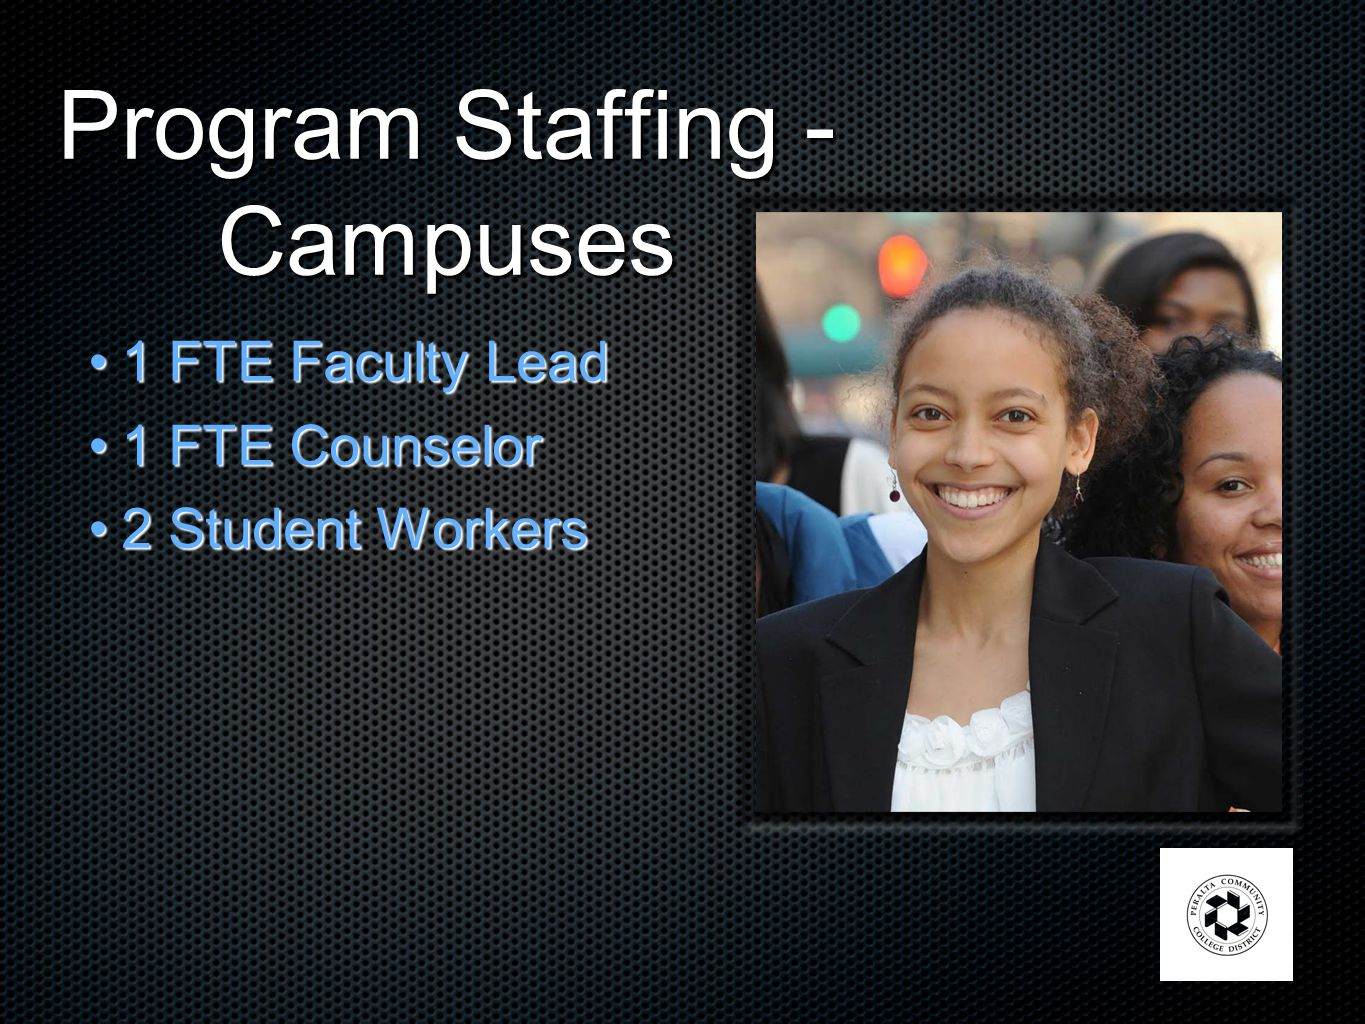 Program Staffing - Campuses 1 FTE Faculty Lead1 FTE Faculty Lead 1 FTE Counselor1 FTE Counselor 2 Student Workers2 Student Workers